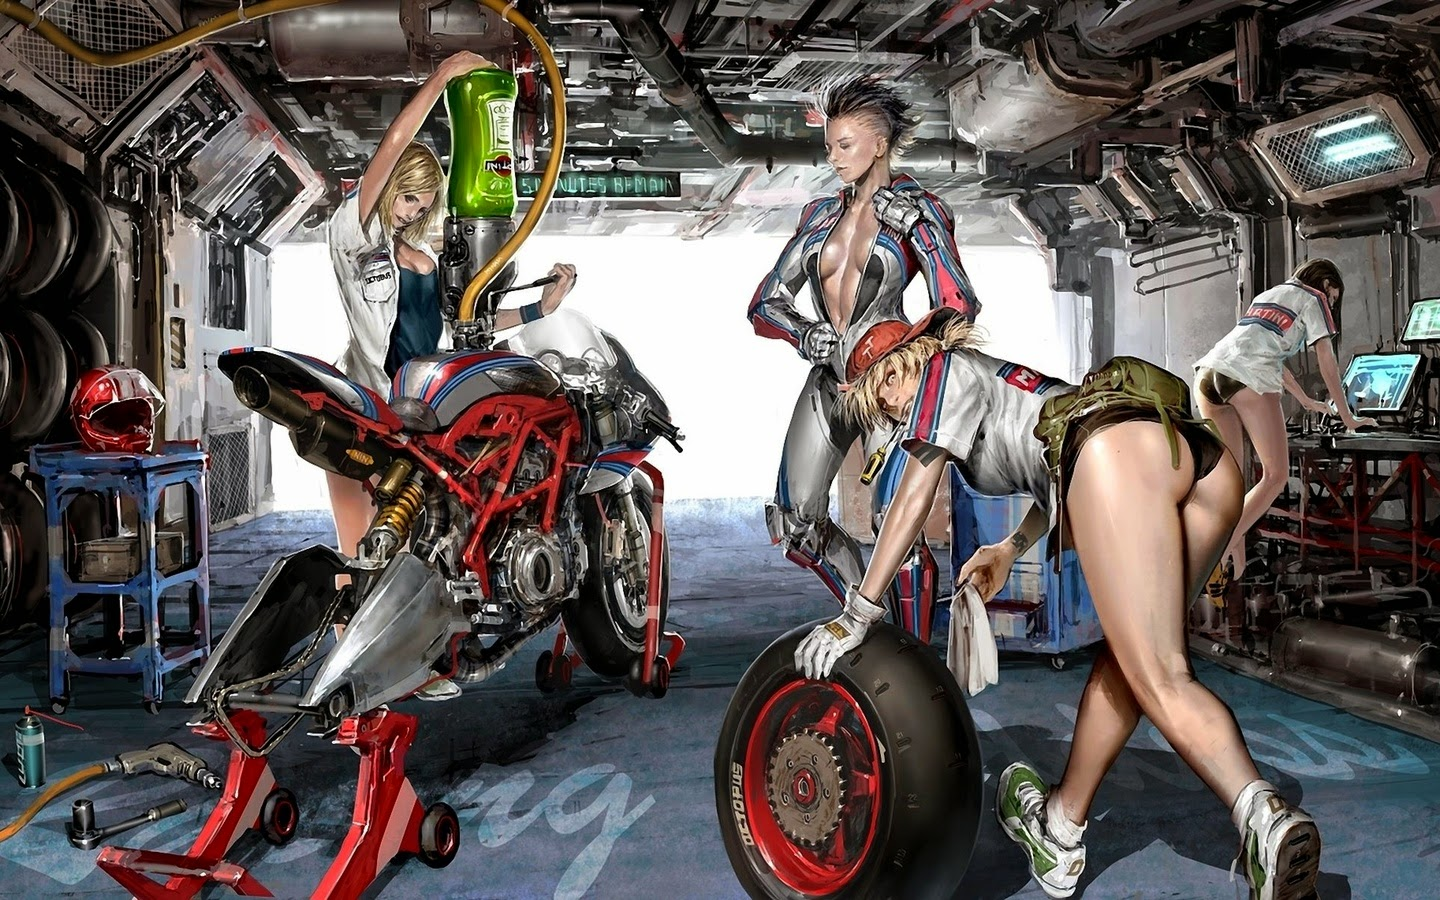 Mercenary+Garage+Dublin+Ireland+Custom+Motorcycle+Workshop+Martini+Racing+Workshop+Pit+Stop+Girls+Illustration+Sci+Fi+Art.jpg (1440×900)